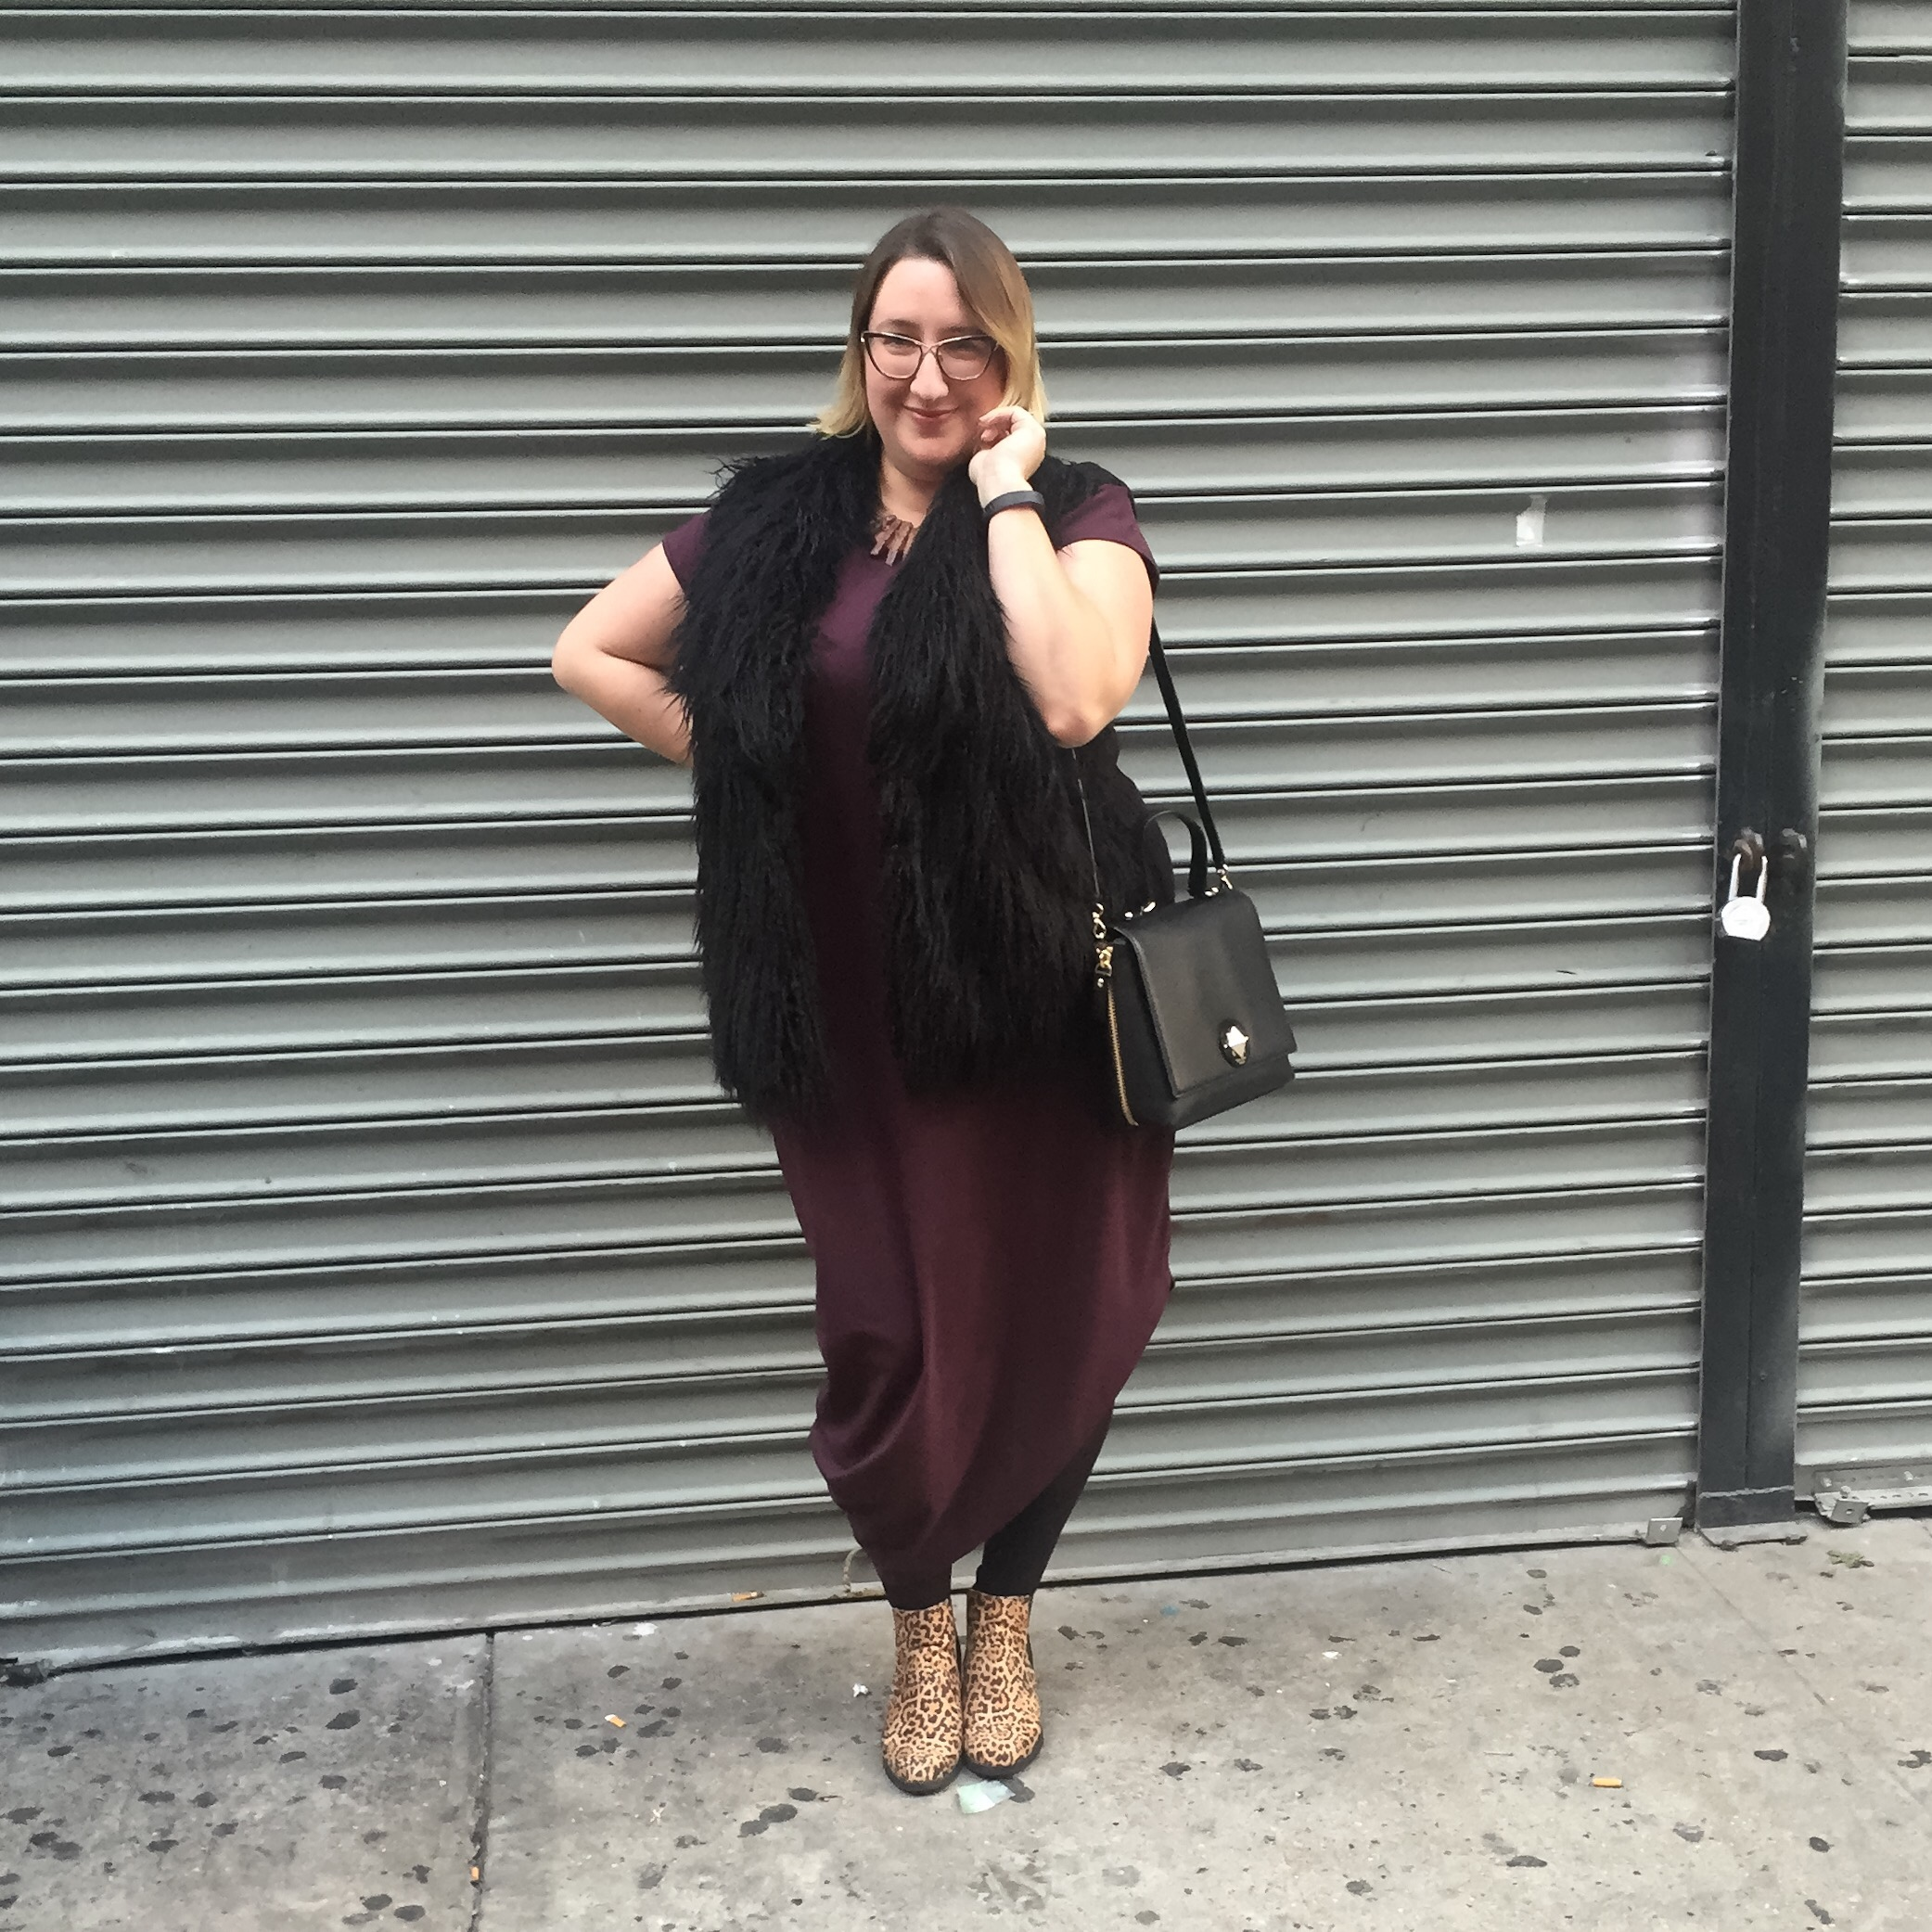 OOTD: Downtown Brunch